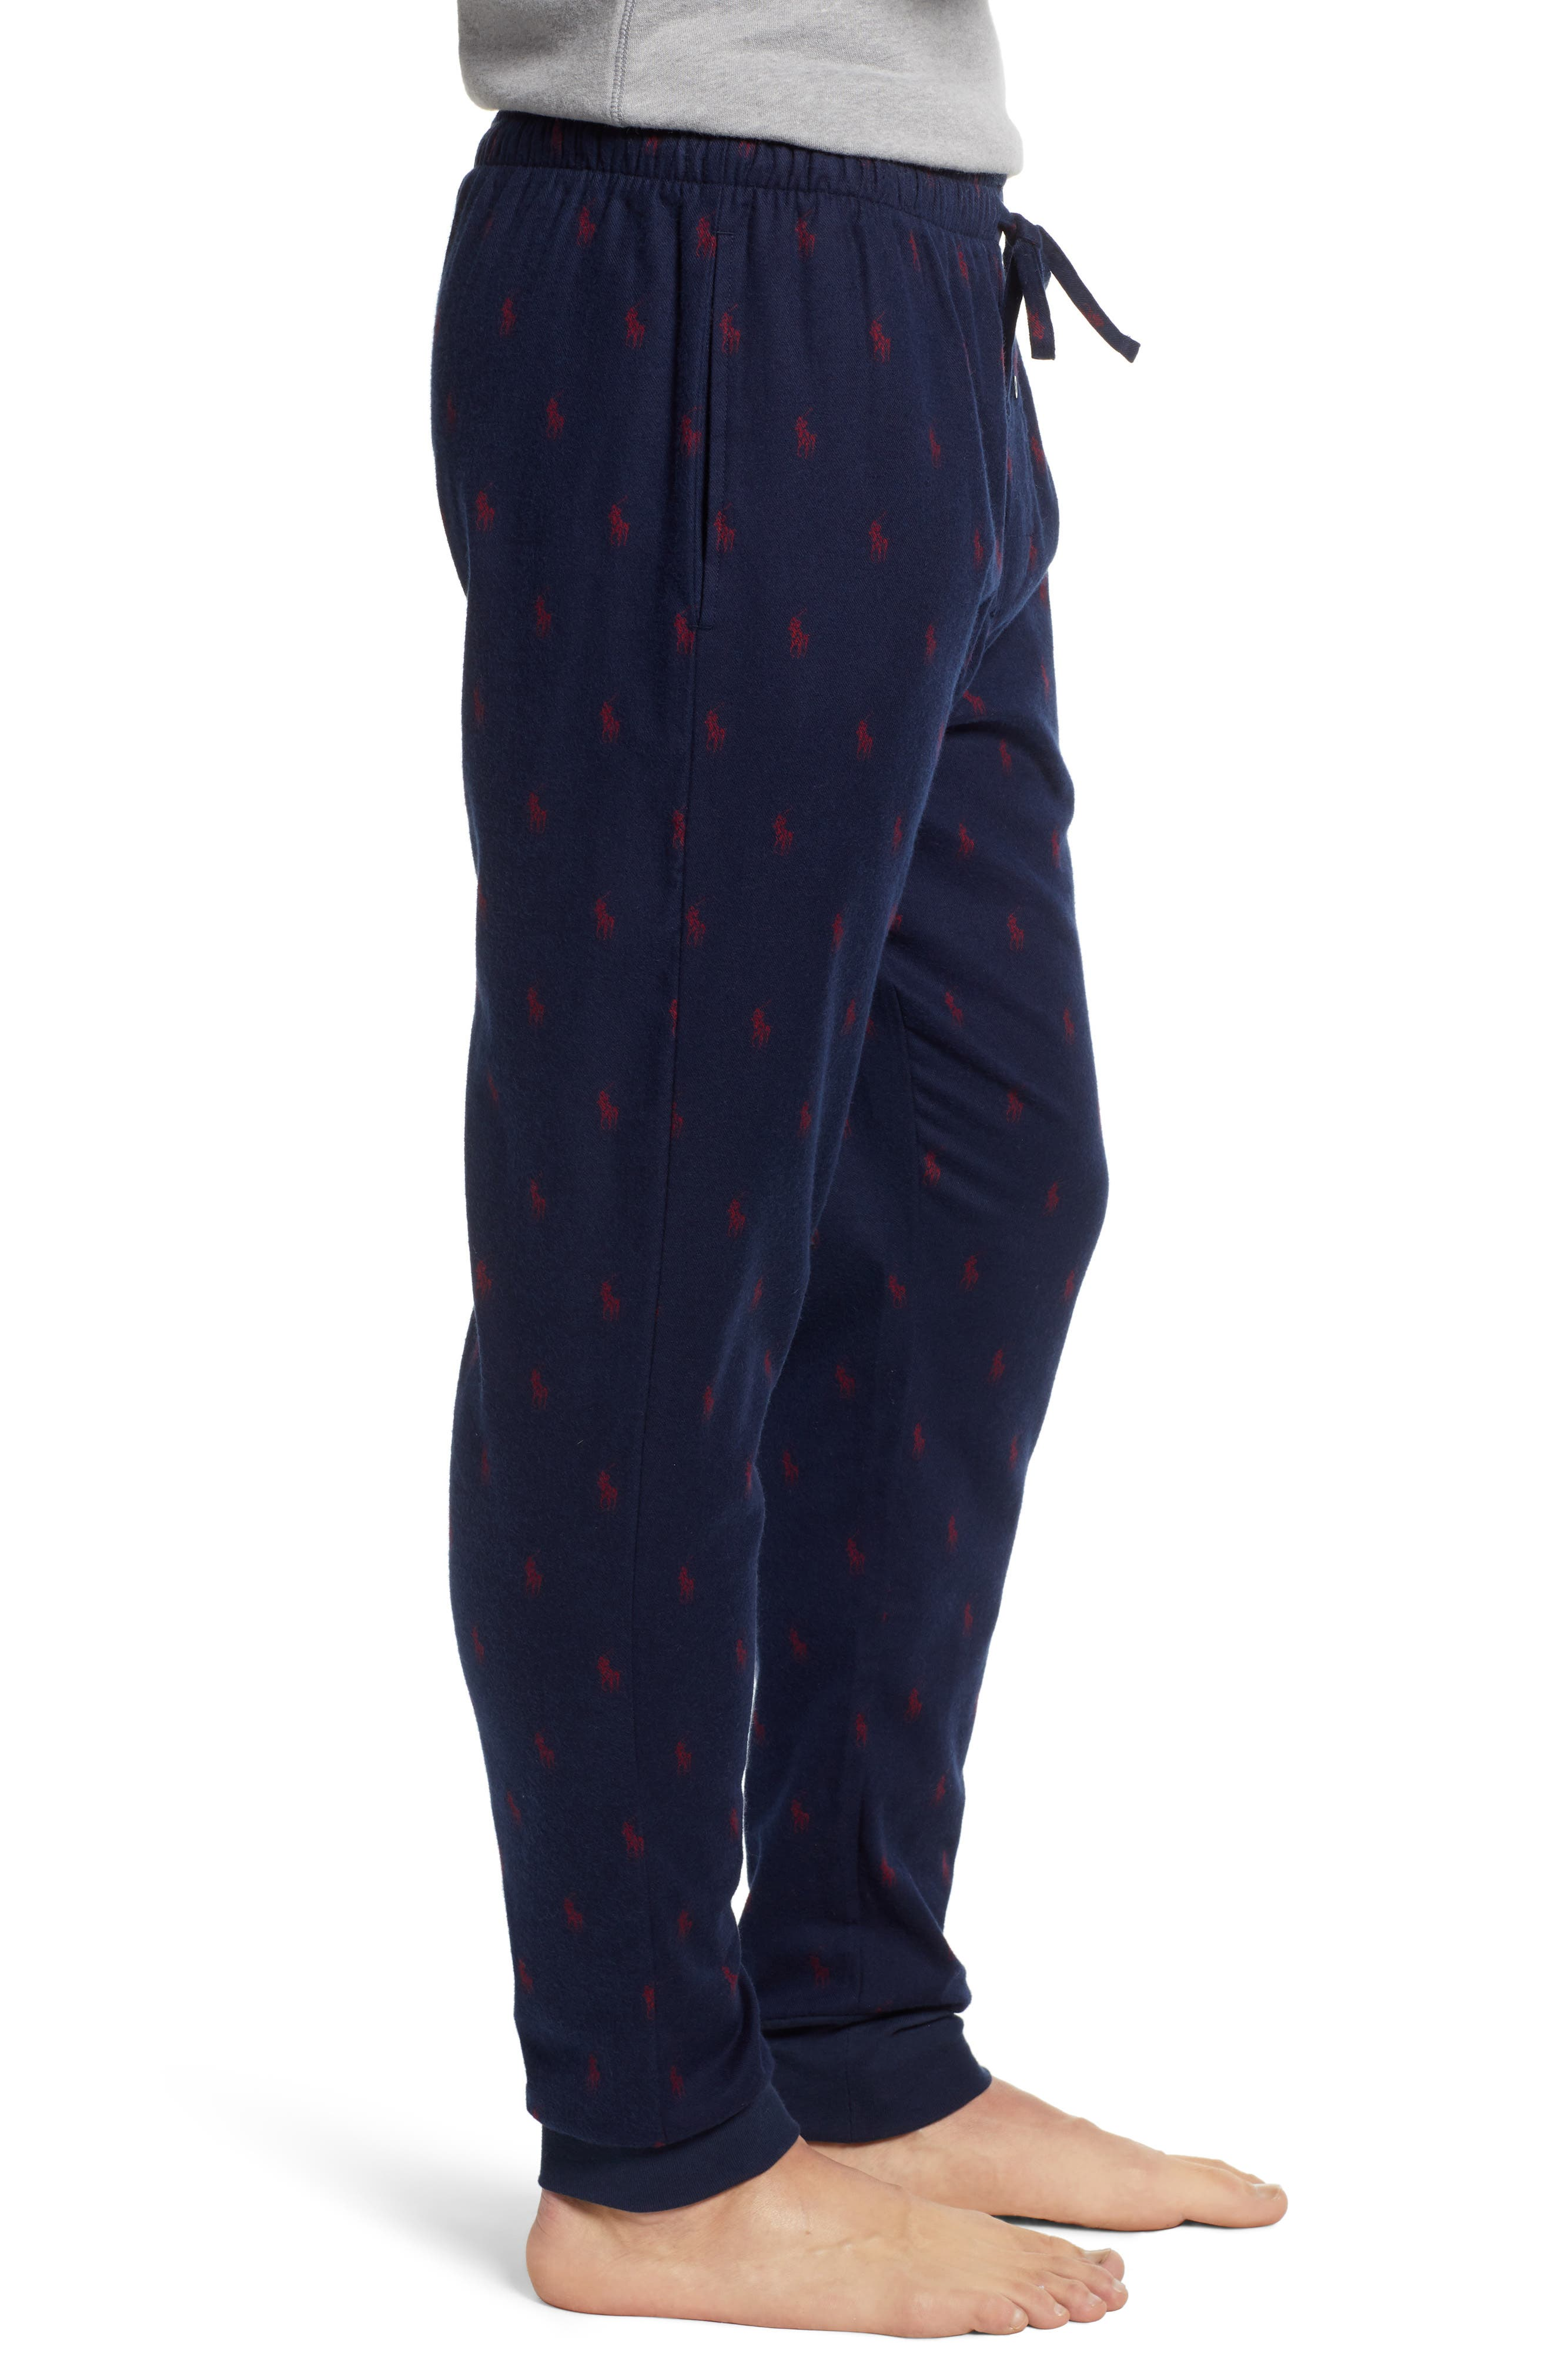 POLO RALPH LAUREN,                             Flannel Cotton Jogger Pants,                             Alternate thumbnail 3, color,                             CRUISE NAVY/ HOLIDAY RED